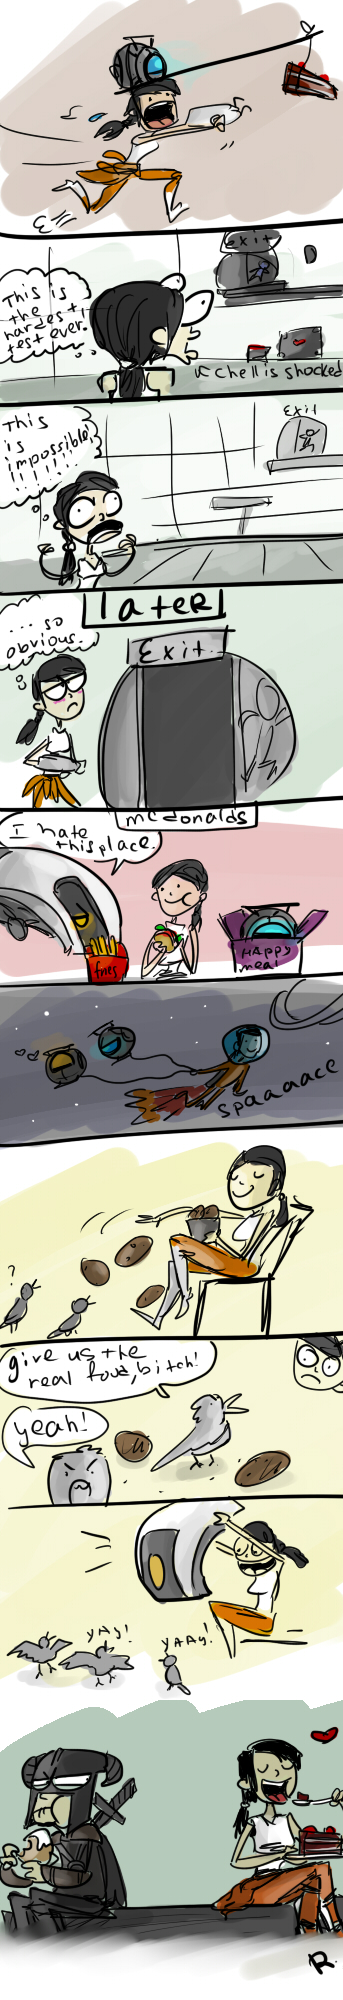 Portal 2, doodles by Ayej